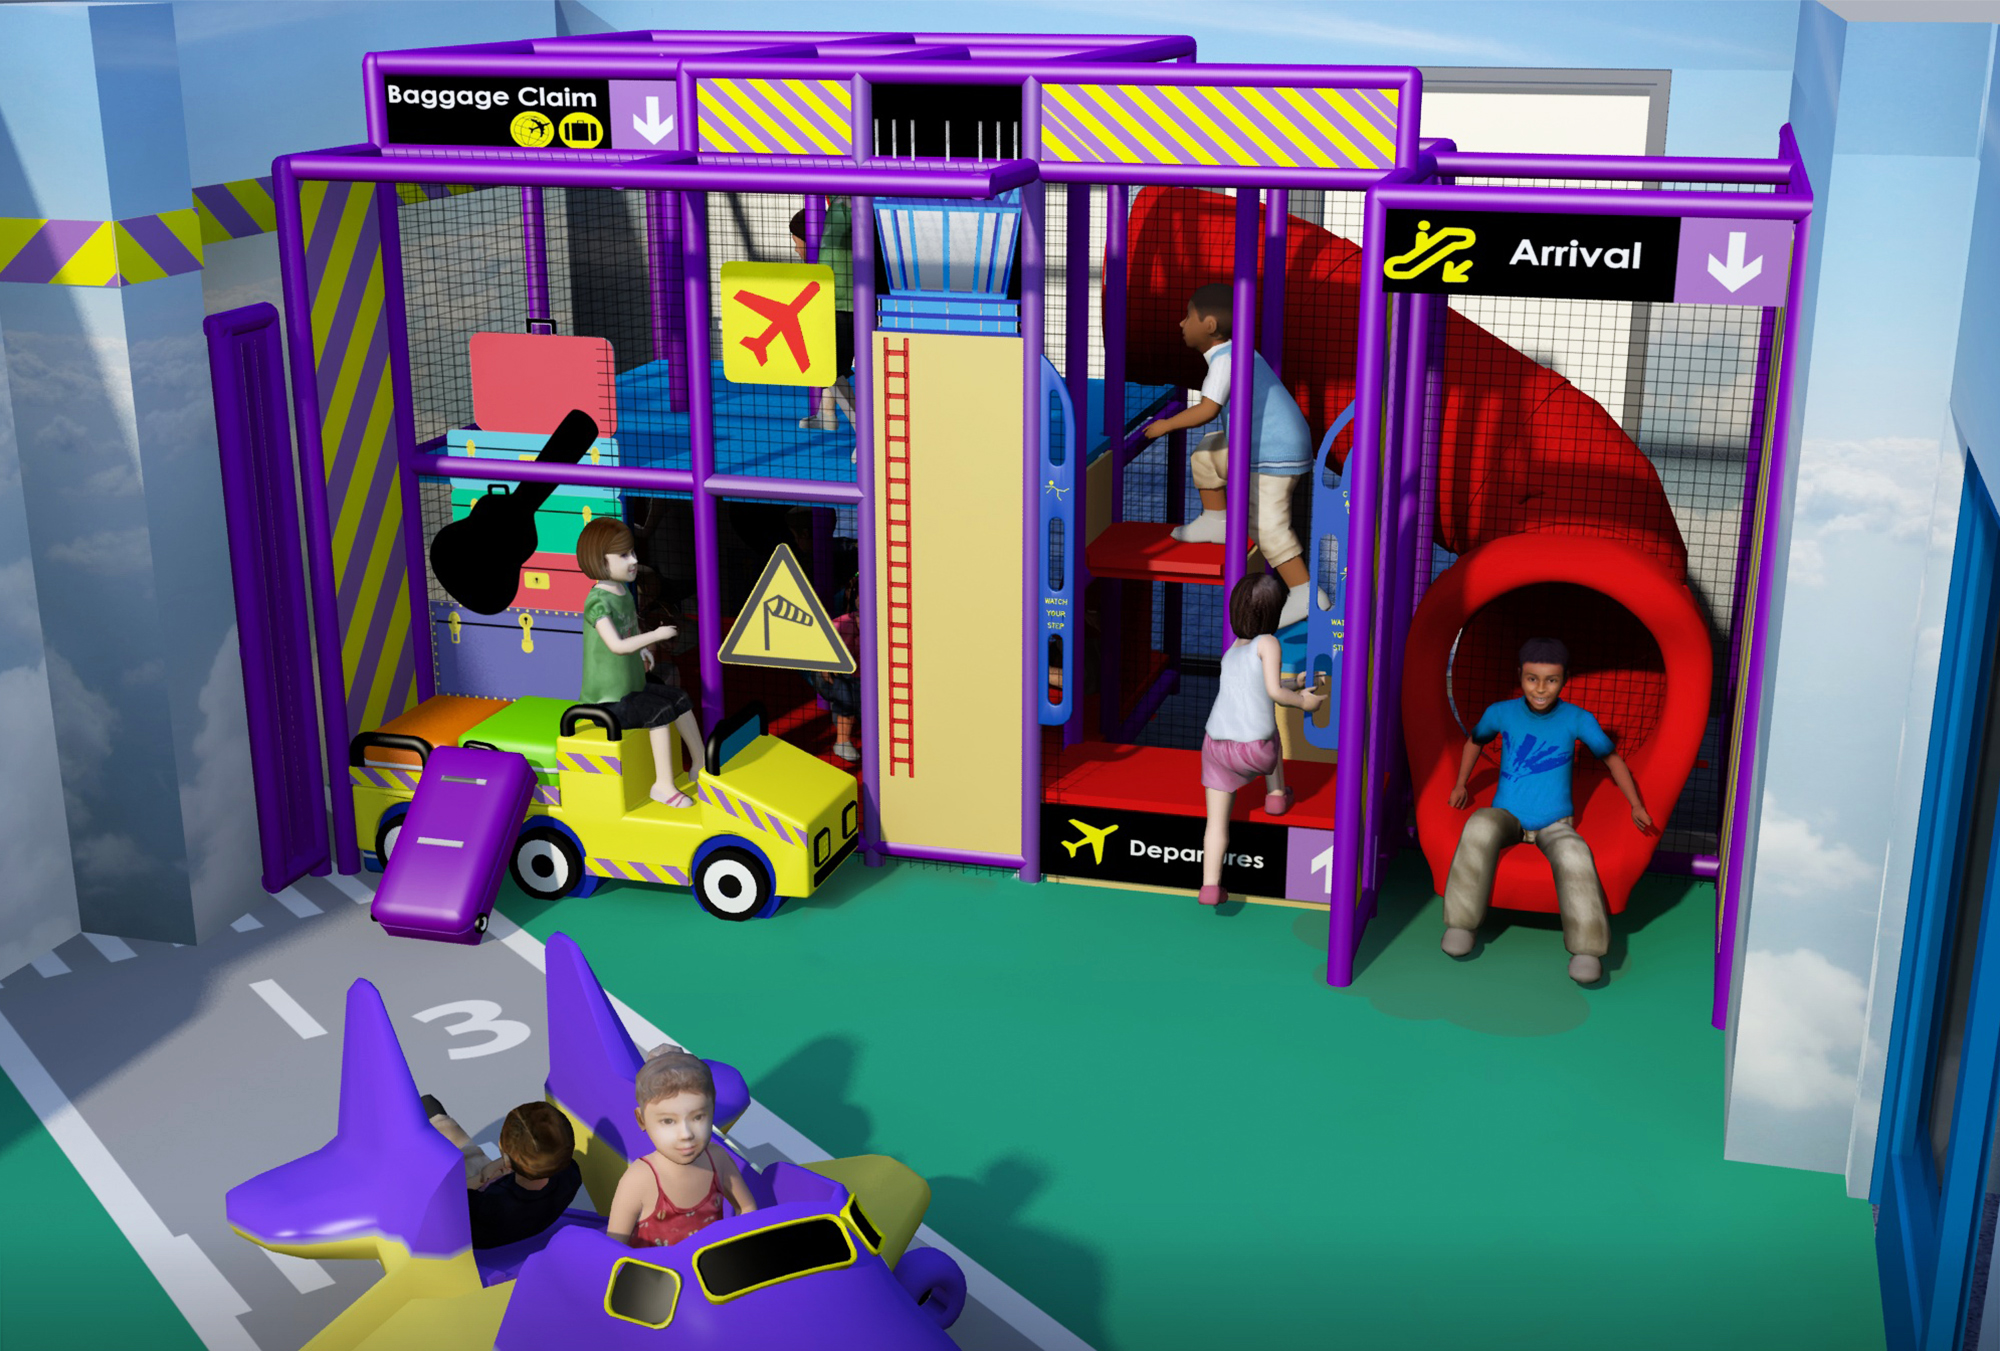 Airport play area elements